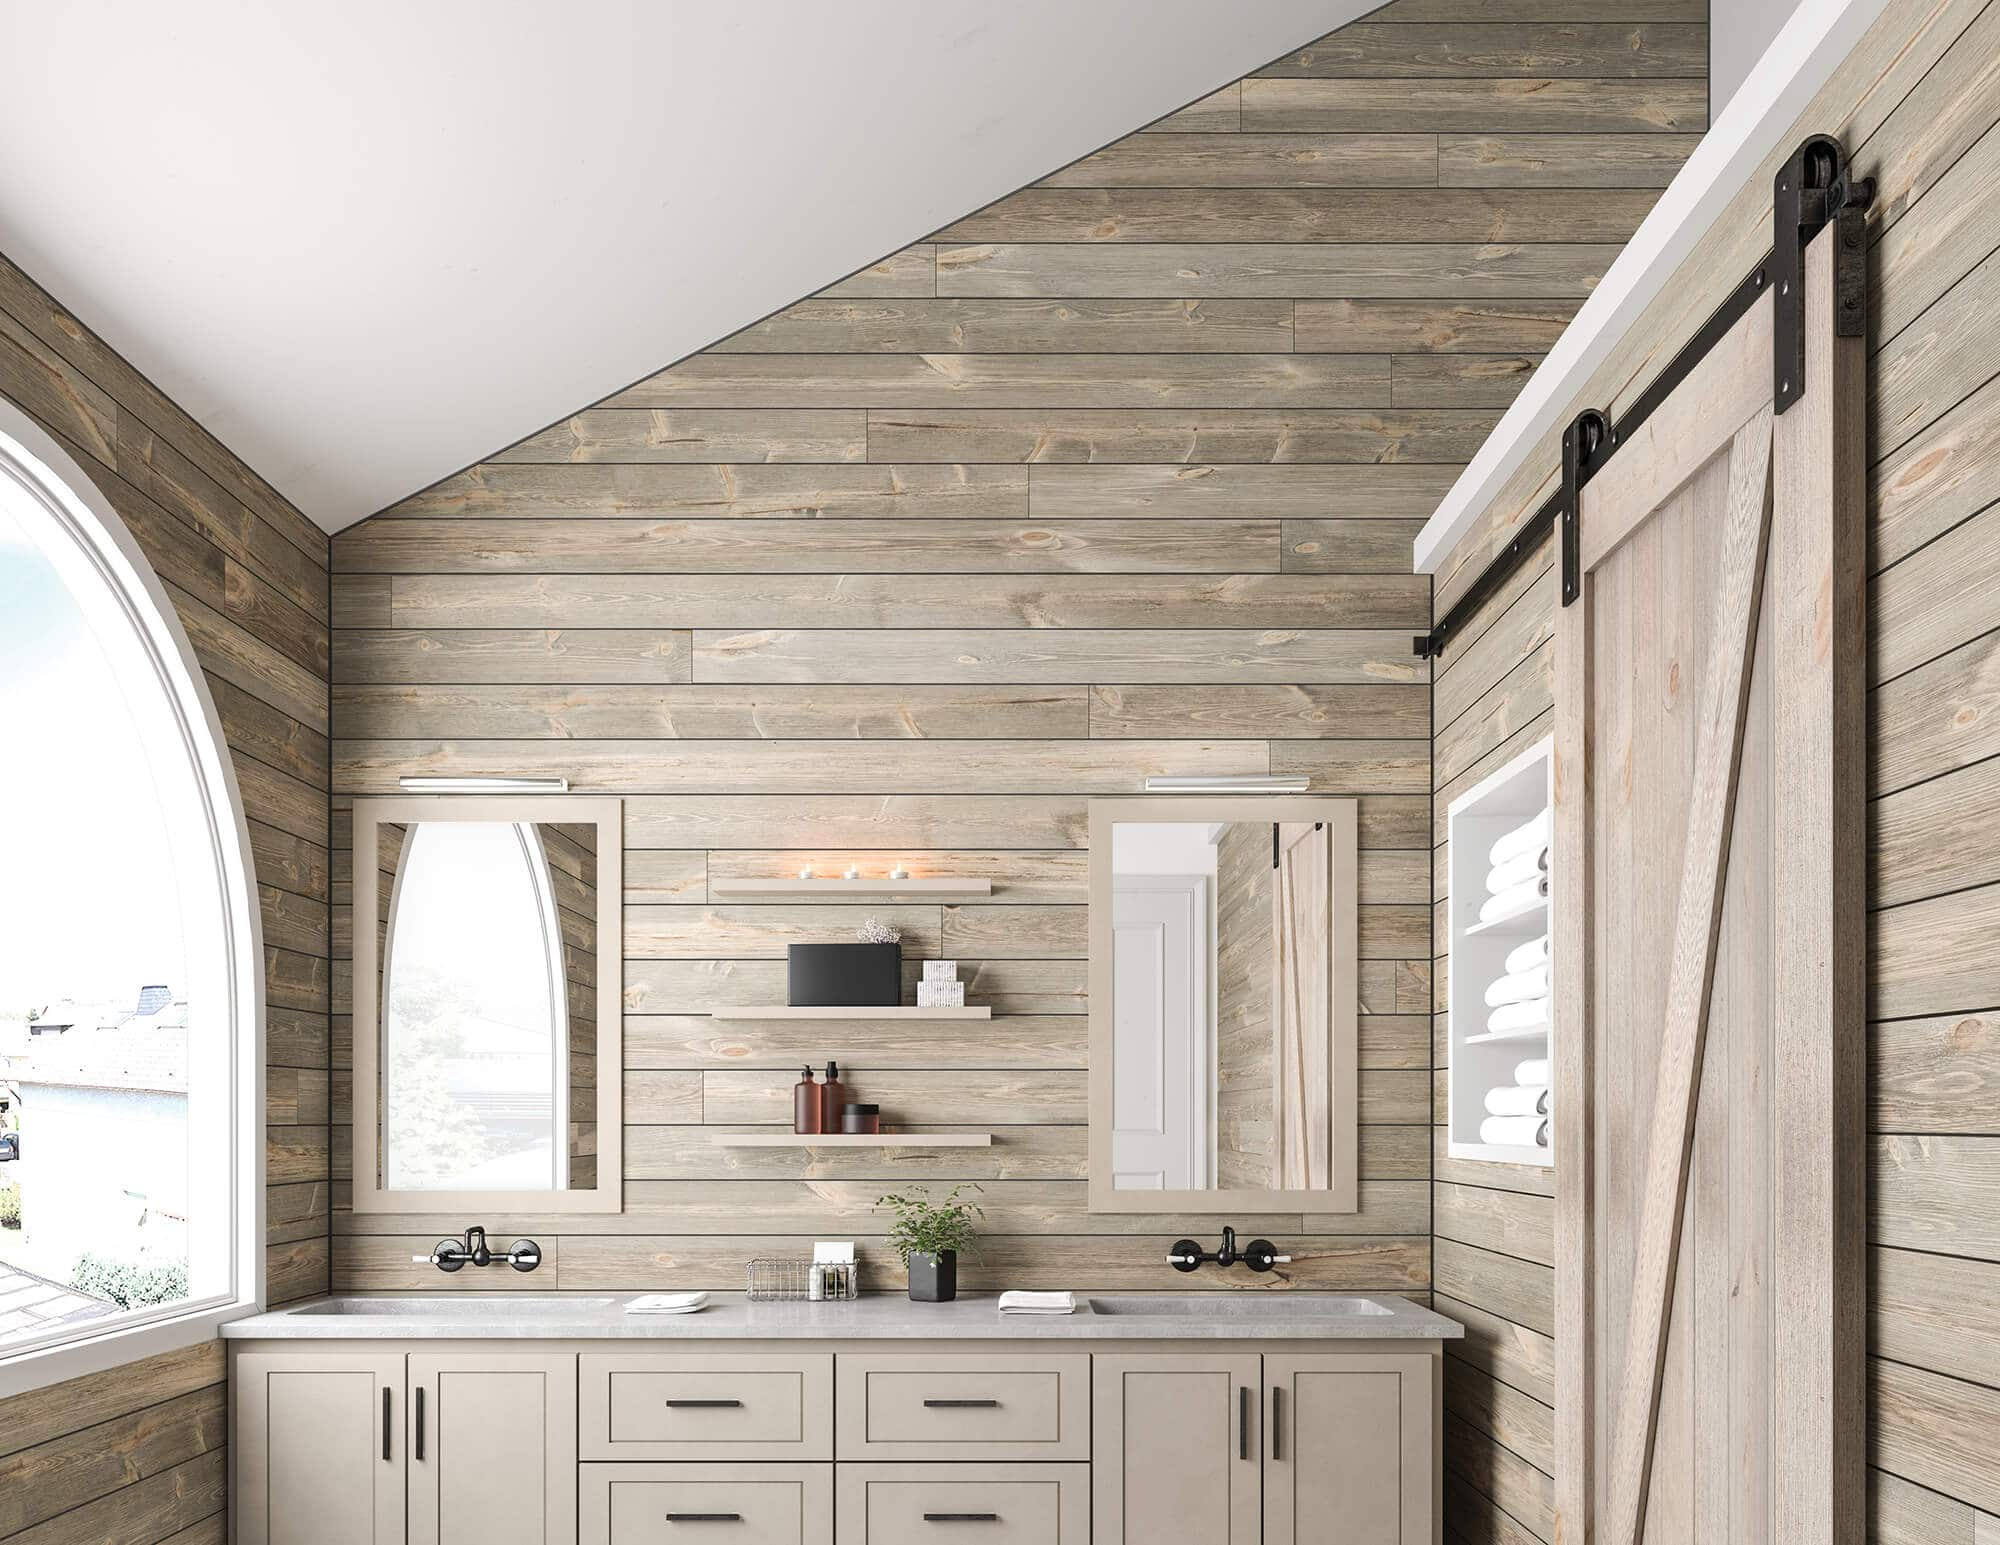 Excellent-use-of-shiplap-in-a-bathroom-double-vanity